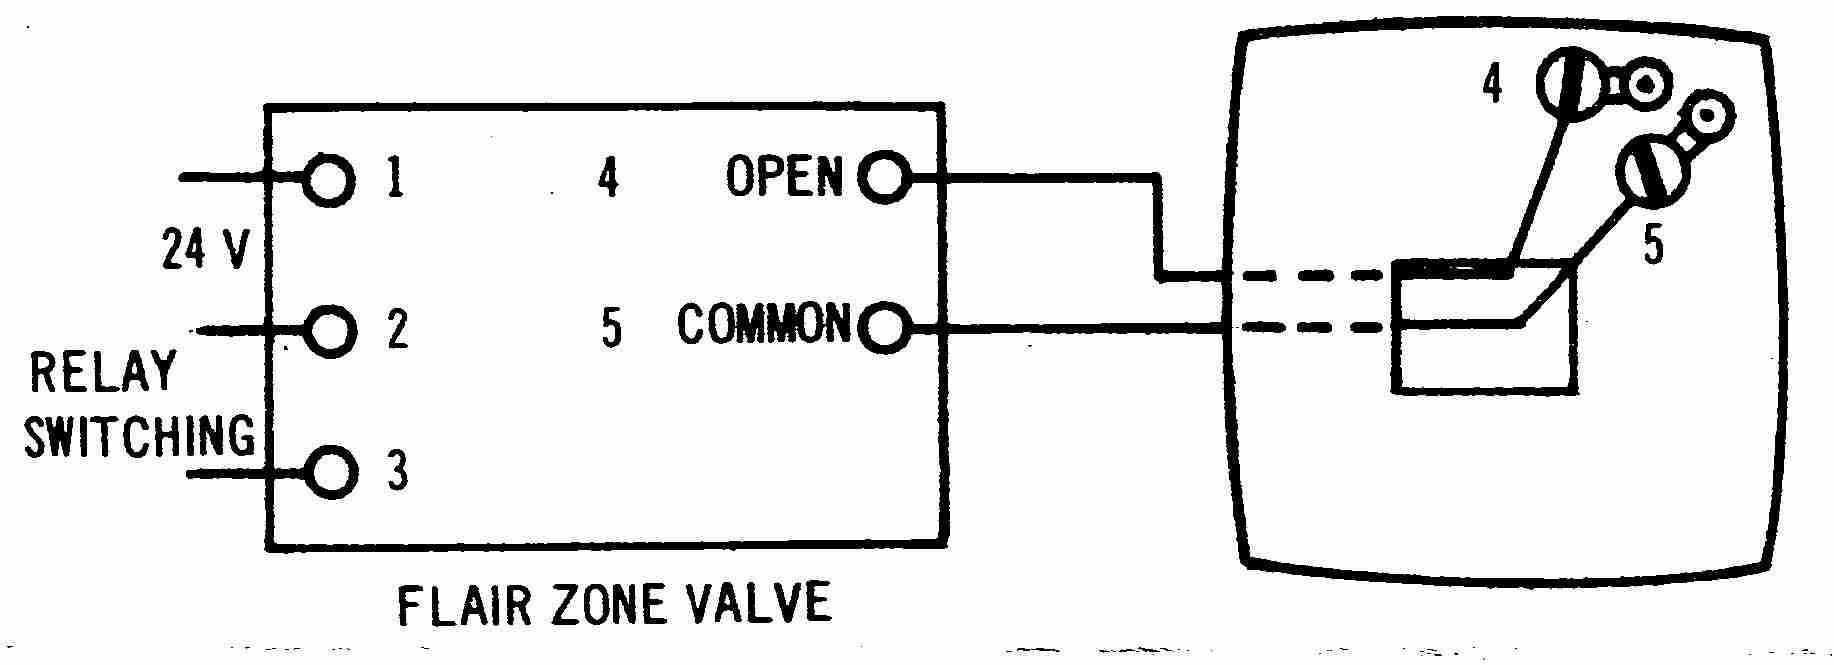 Flair2w_001_DJFc1 room thermostat wiring diagrams for hvac systems 4 Wire Trailer at fashall.co